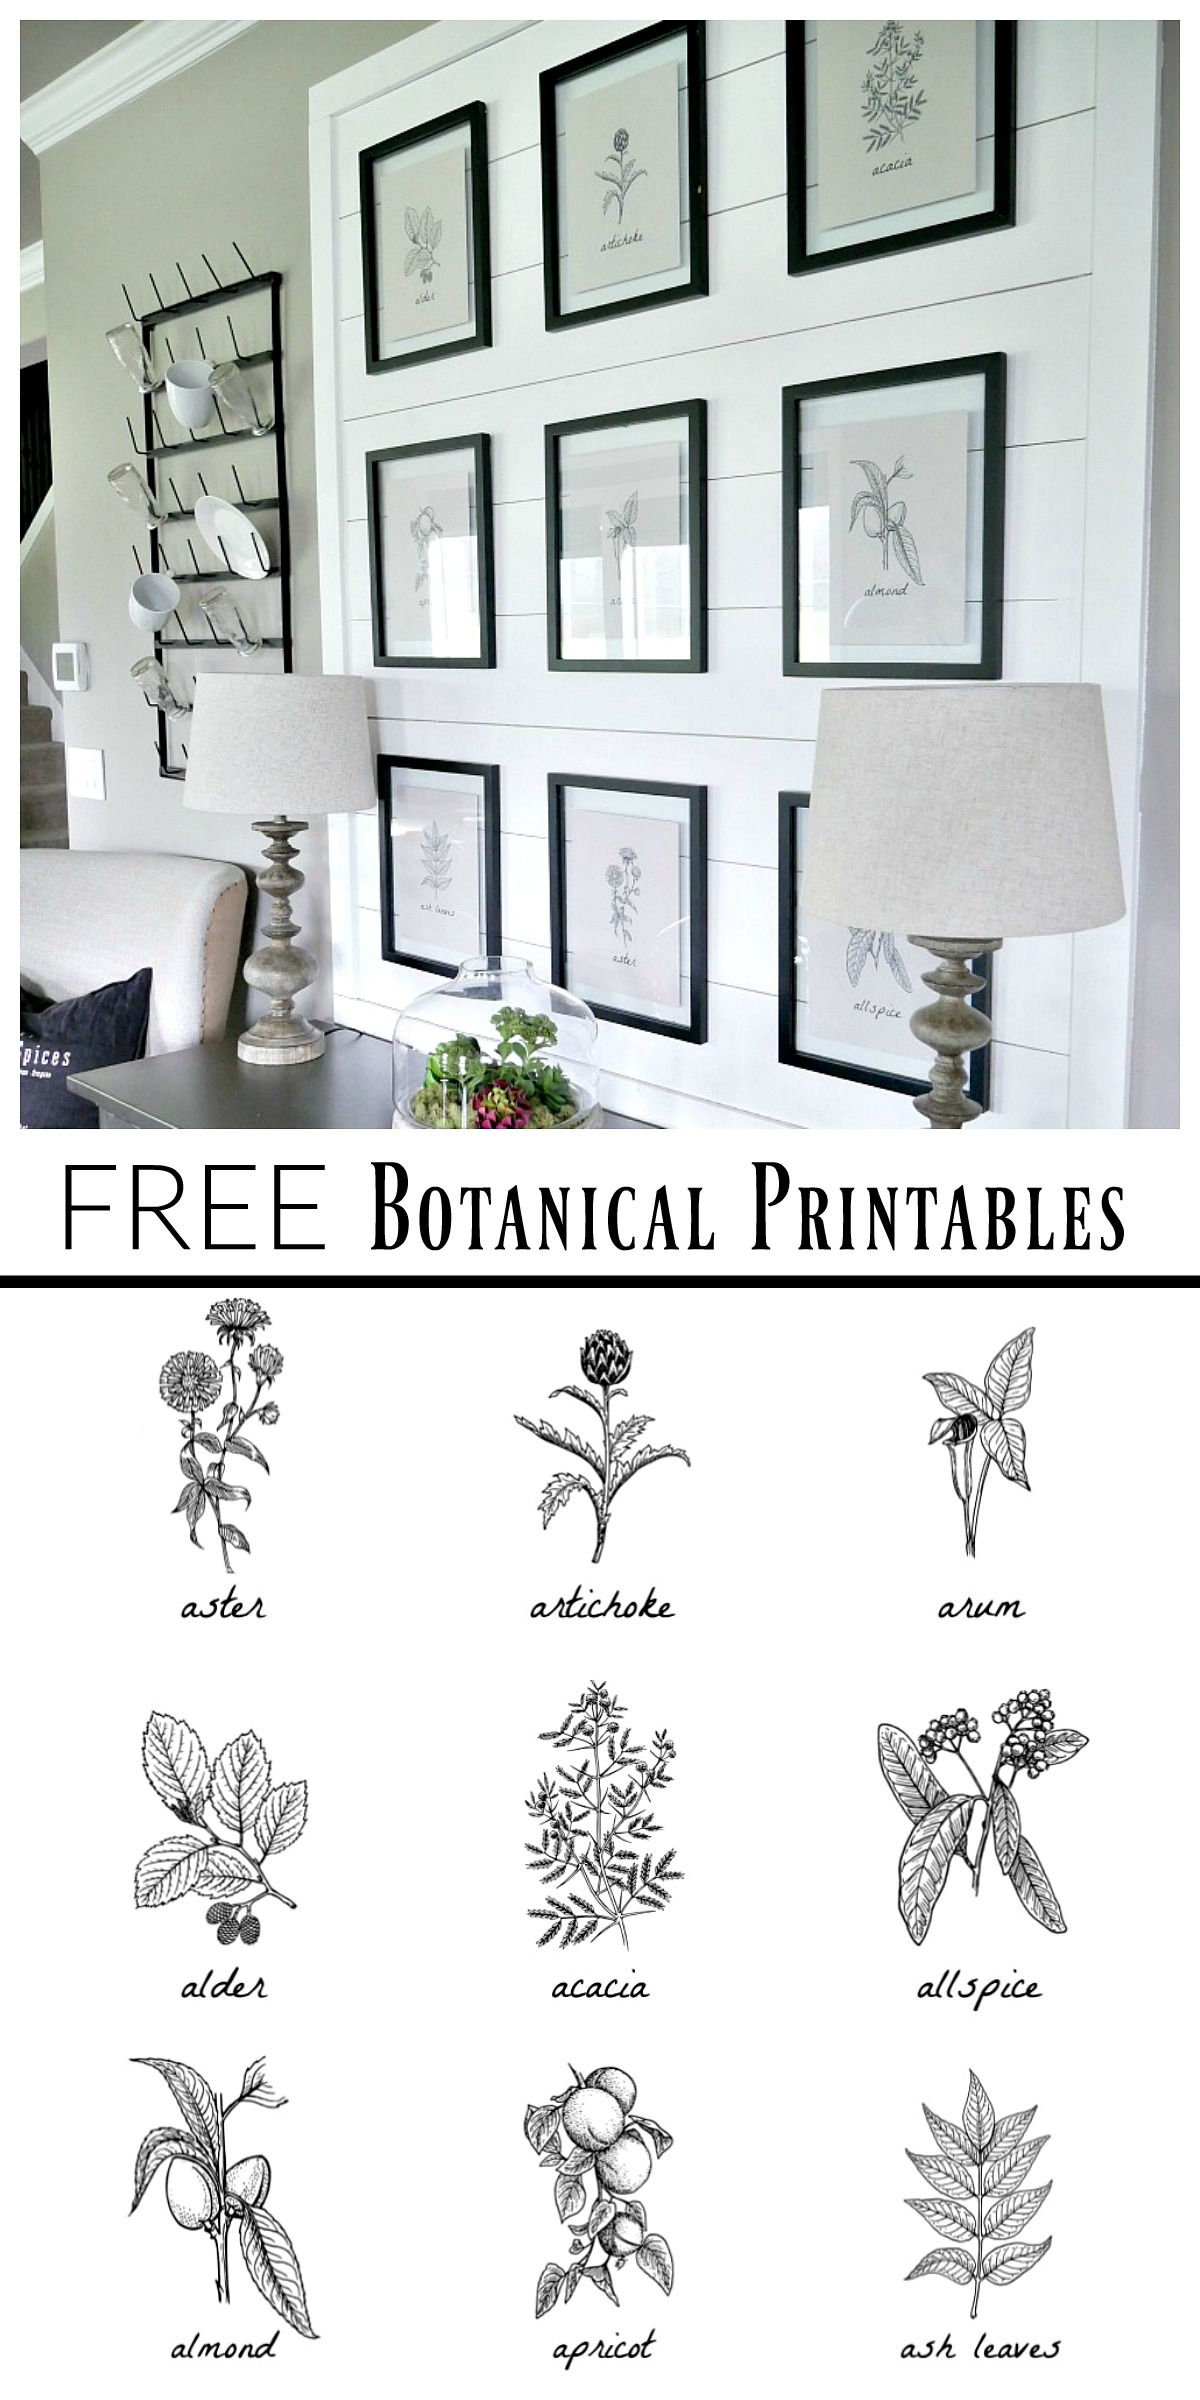 Free Botanical Prints | Bloggers' Best Diy Ideas | Dining Room - Free Black And White Printable Art